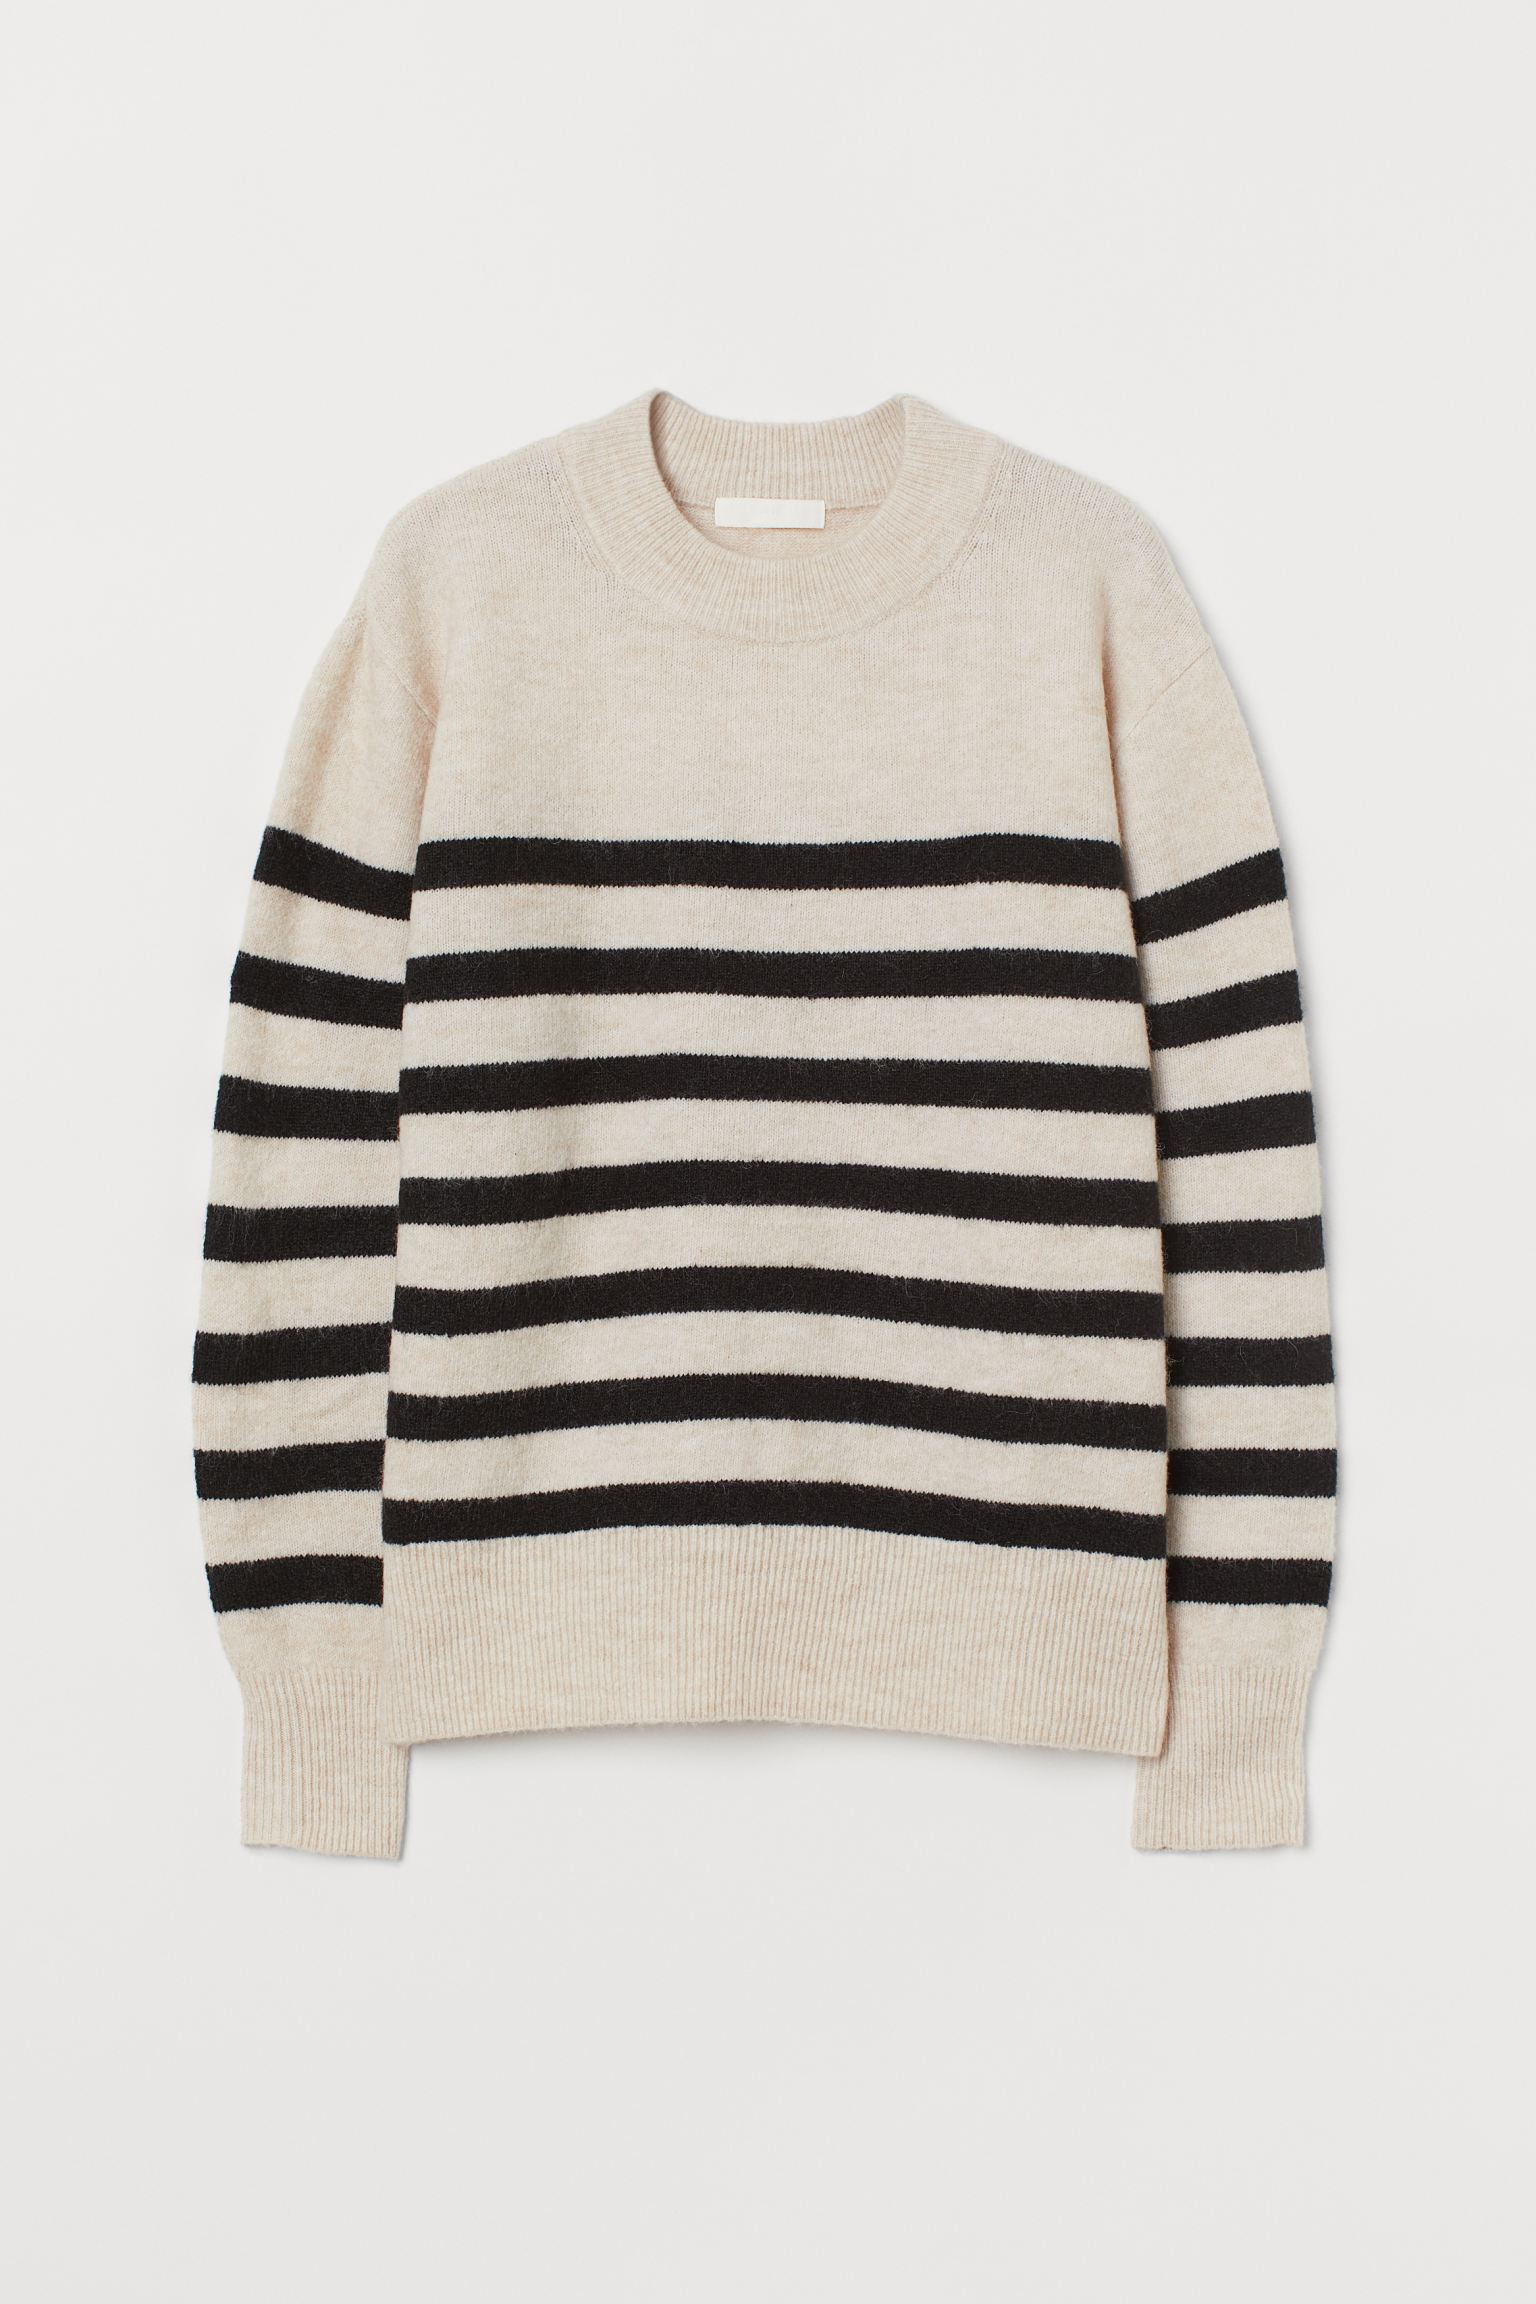 Sweater in soft fine knit with wool in the weft. Square-cut model with dropped shoulders and ribbed trim on collar, cuffs and hem. Made from recycled polyester.